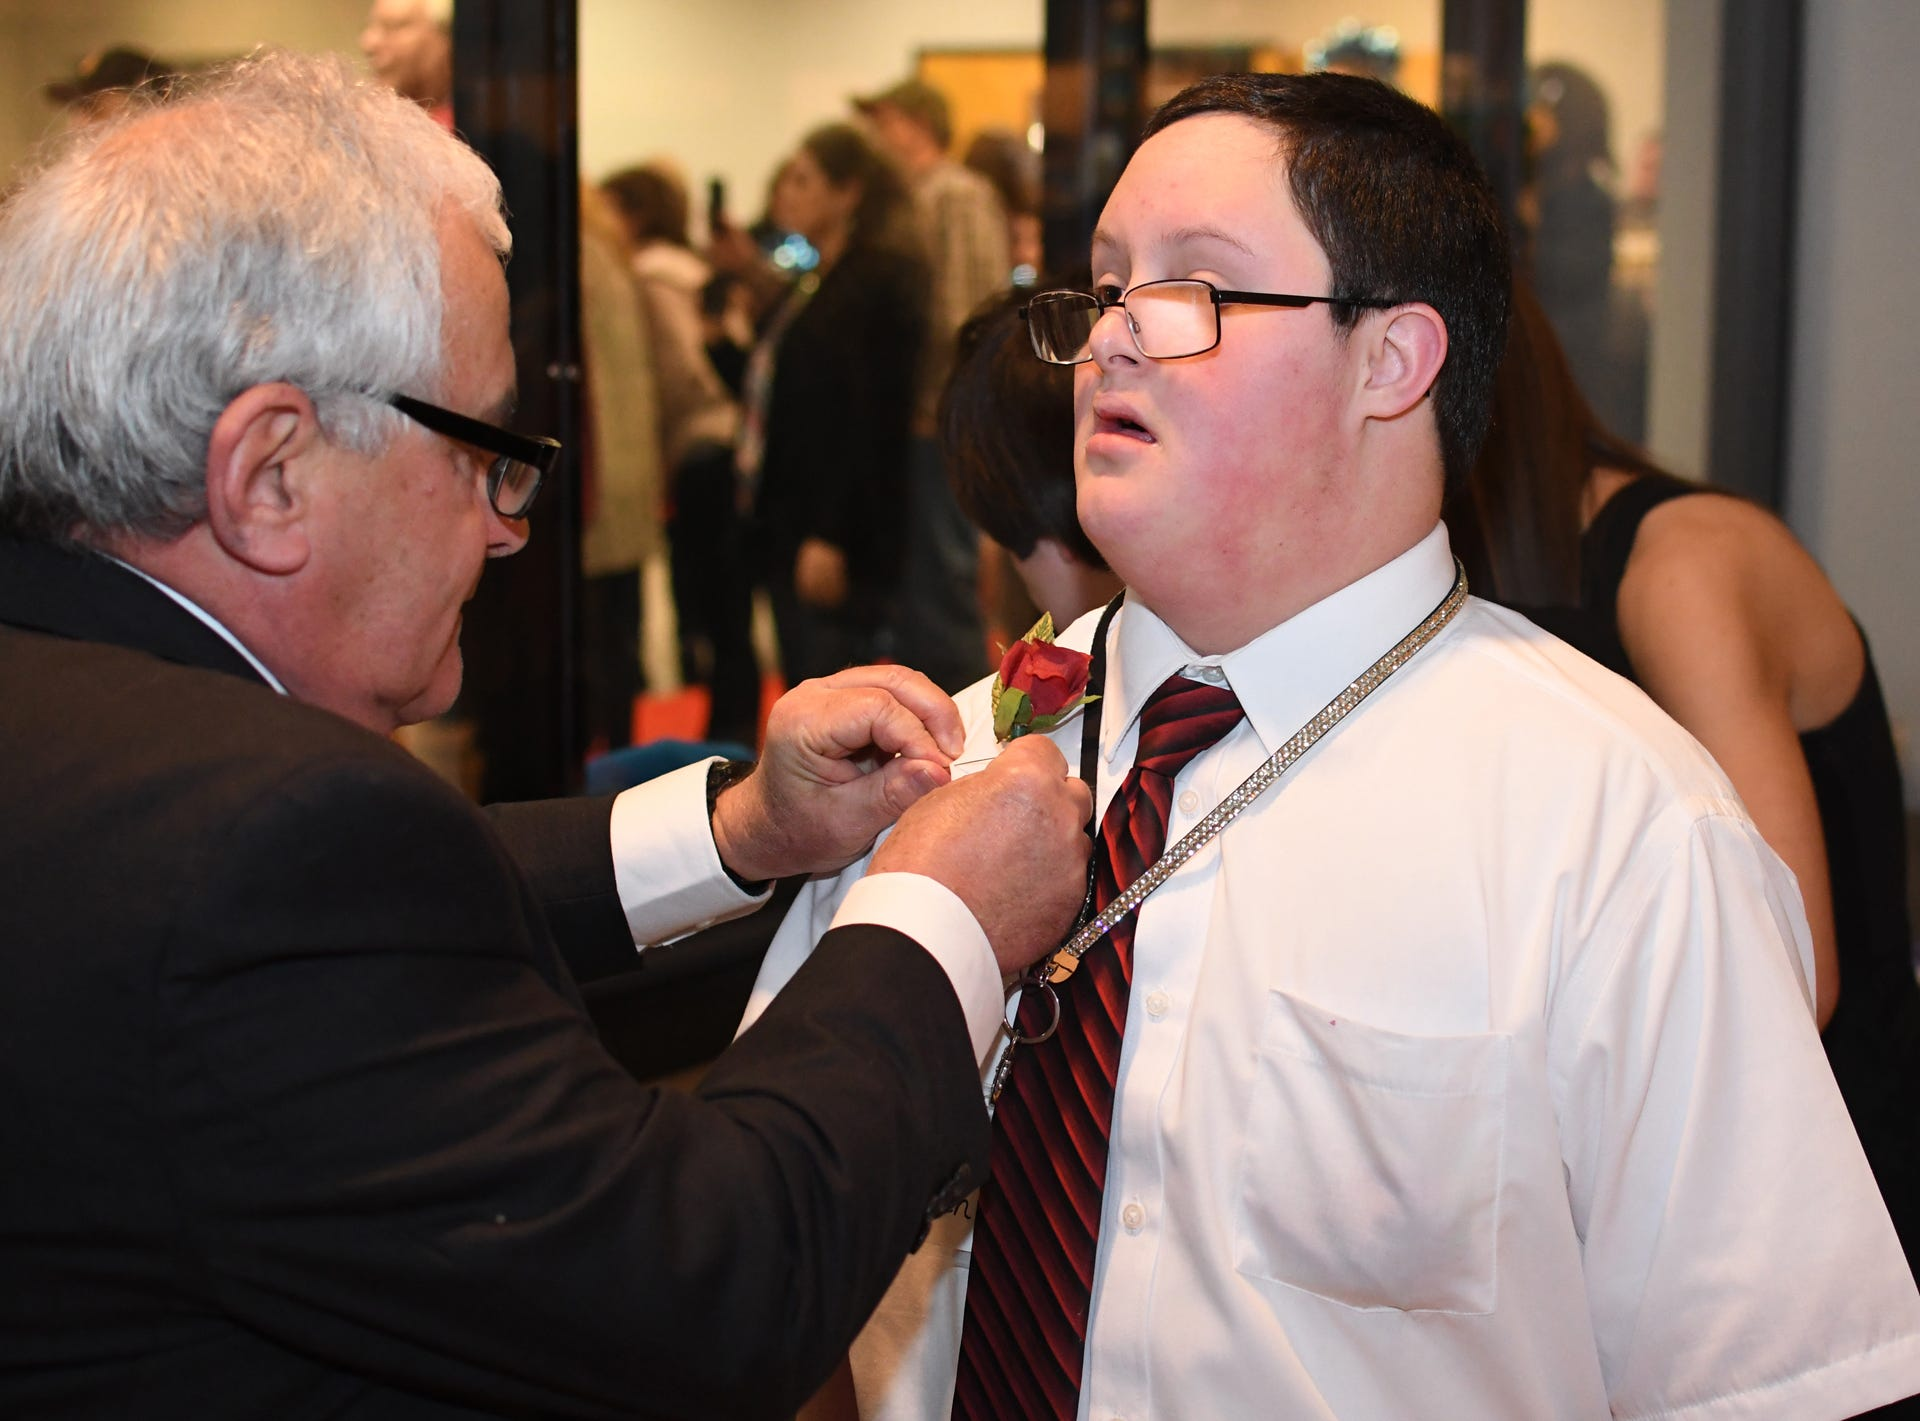 A prom guest is presented a boutonniere during the Night to Shine Prom at Temple Baptist Church on Friday, February 8, 2019. Churches around the world hosted the prom by the Tim Tebow Foundation for people with special needs.